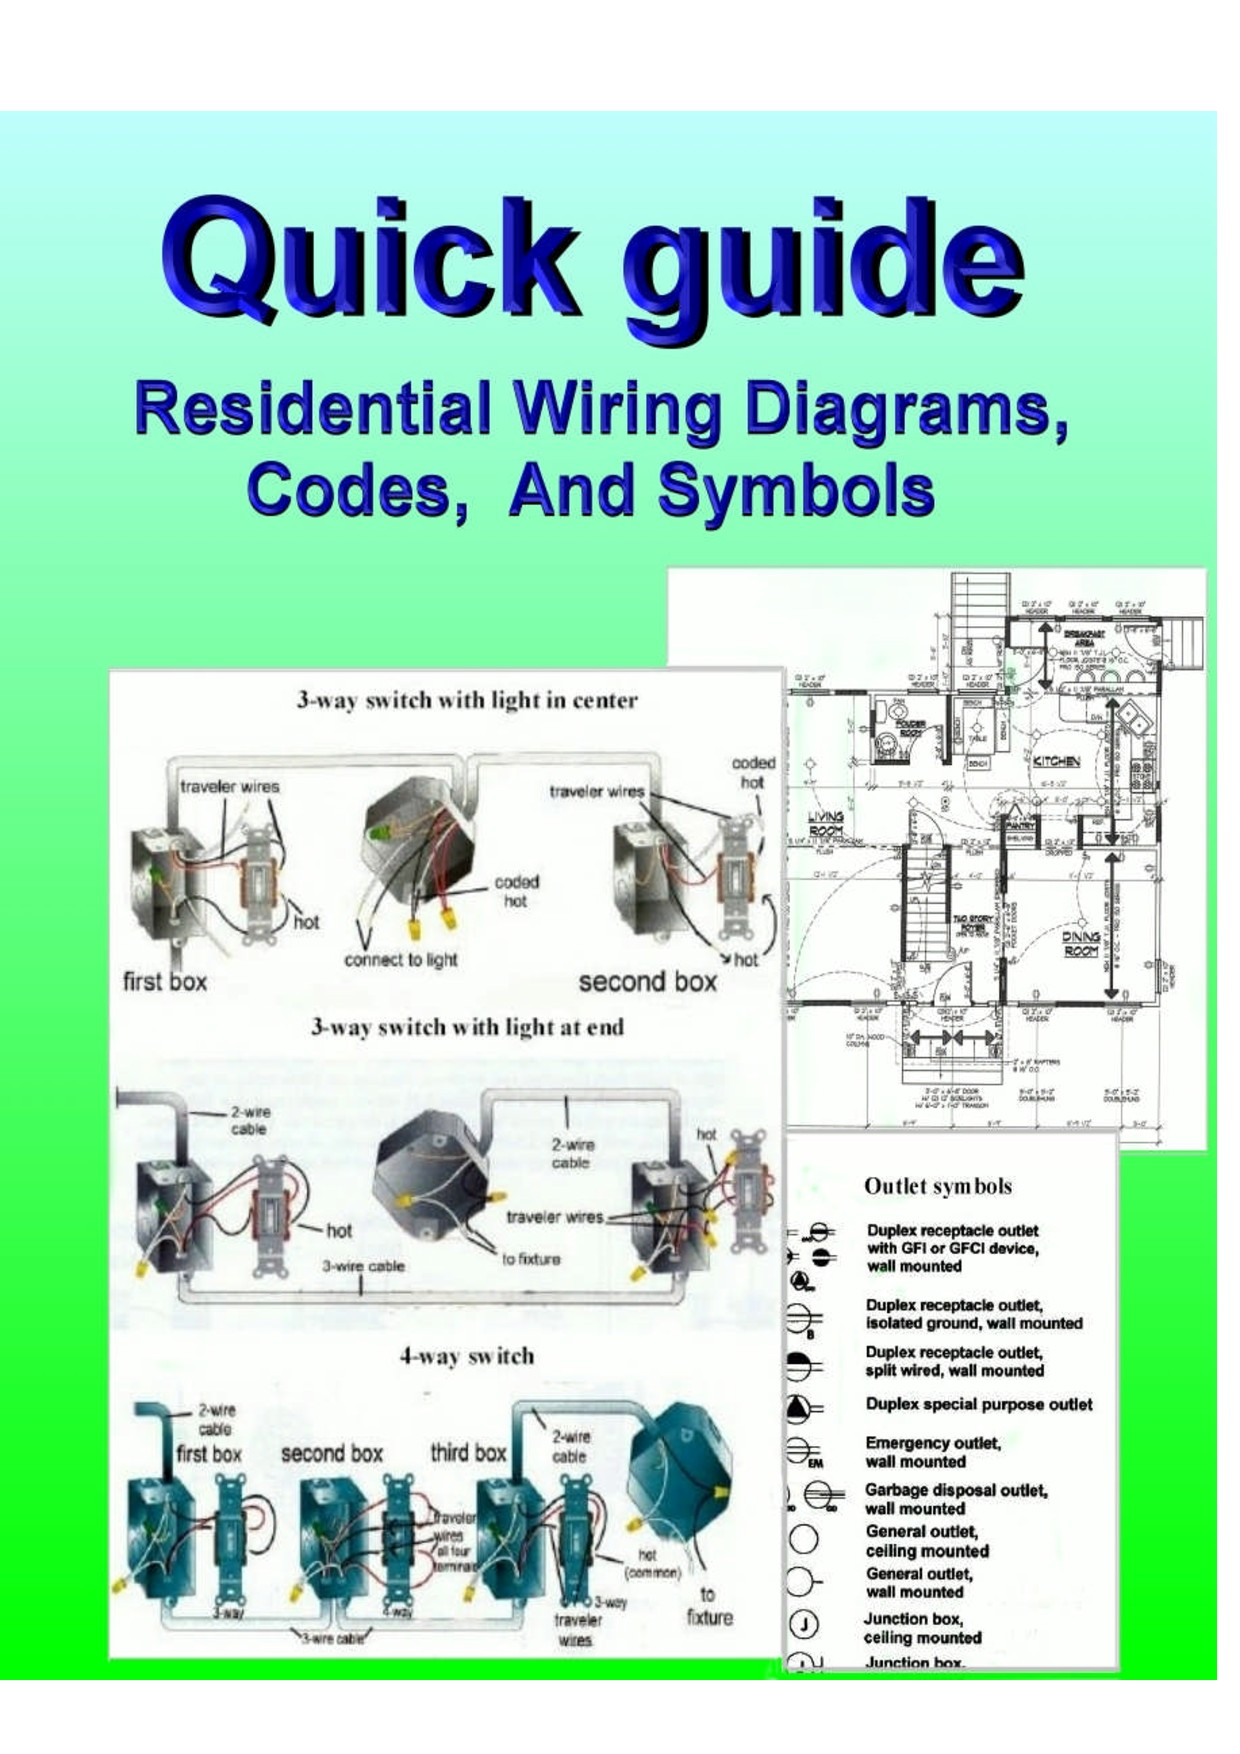 Lighting Contactor with Photocell Lighting Contactor Wiring Diagram Pdf Of Lighting Contactor with Photocell